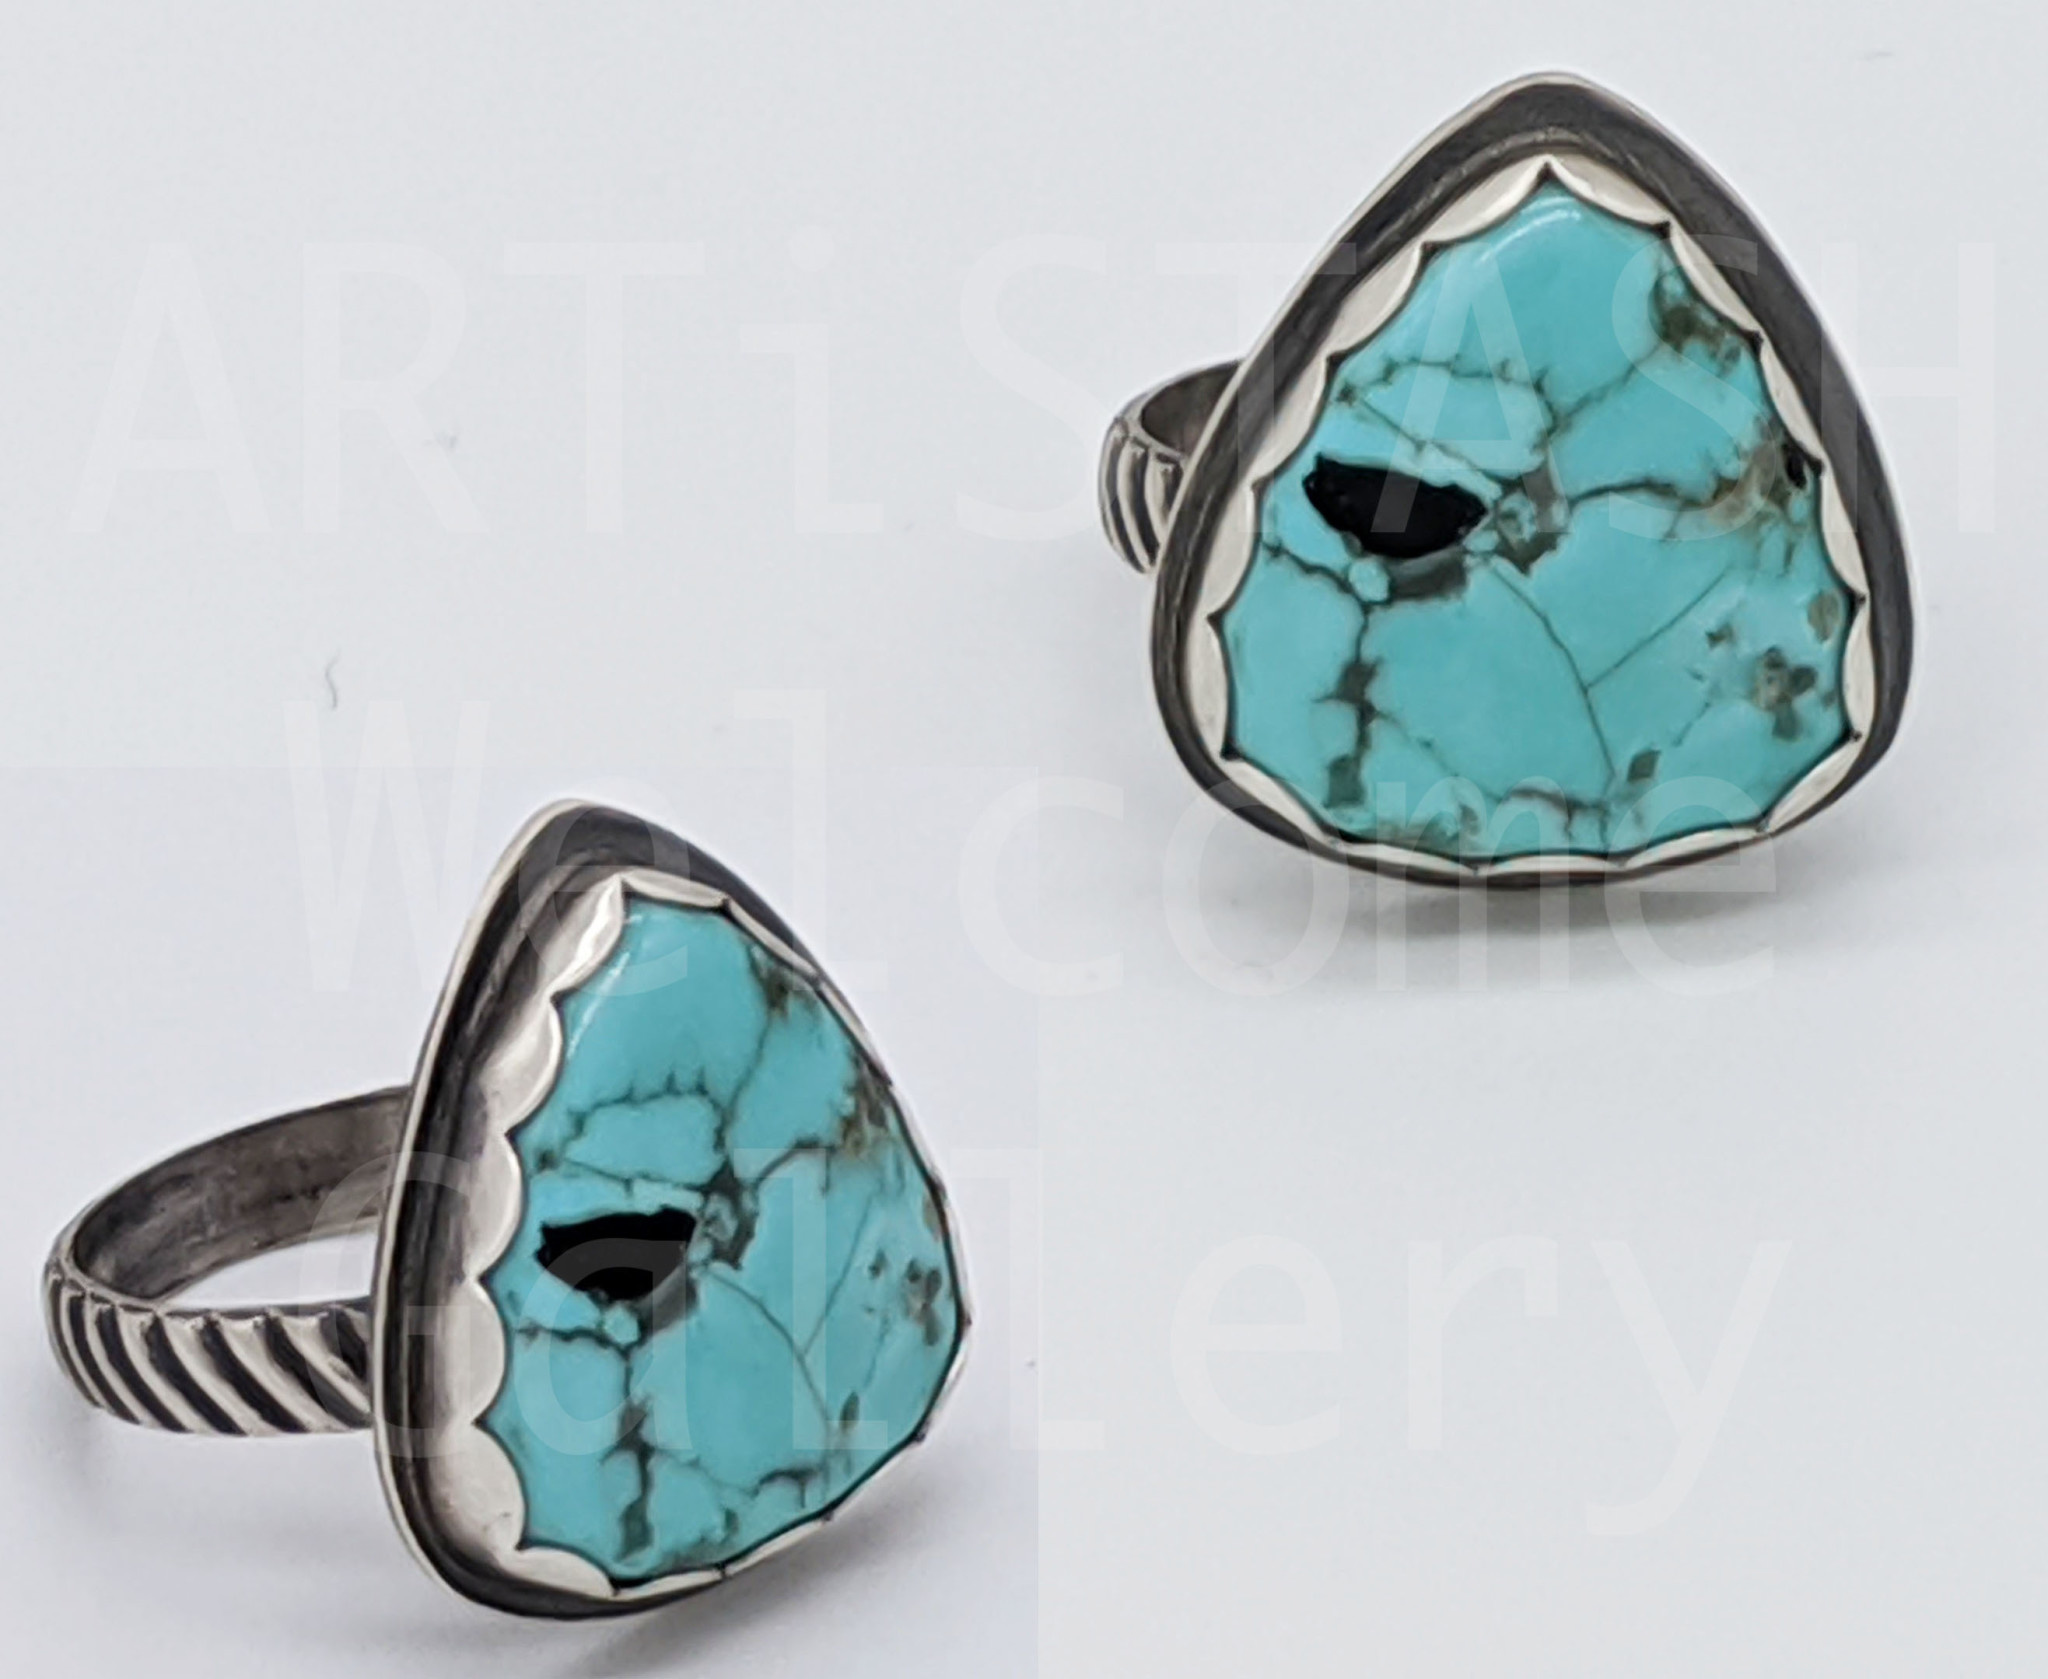 Sarilynn Studio Turquoise Triangle Ring Size 6-3/4 Sterling Silver